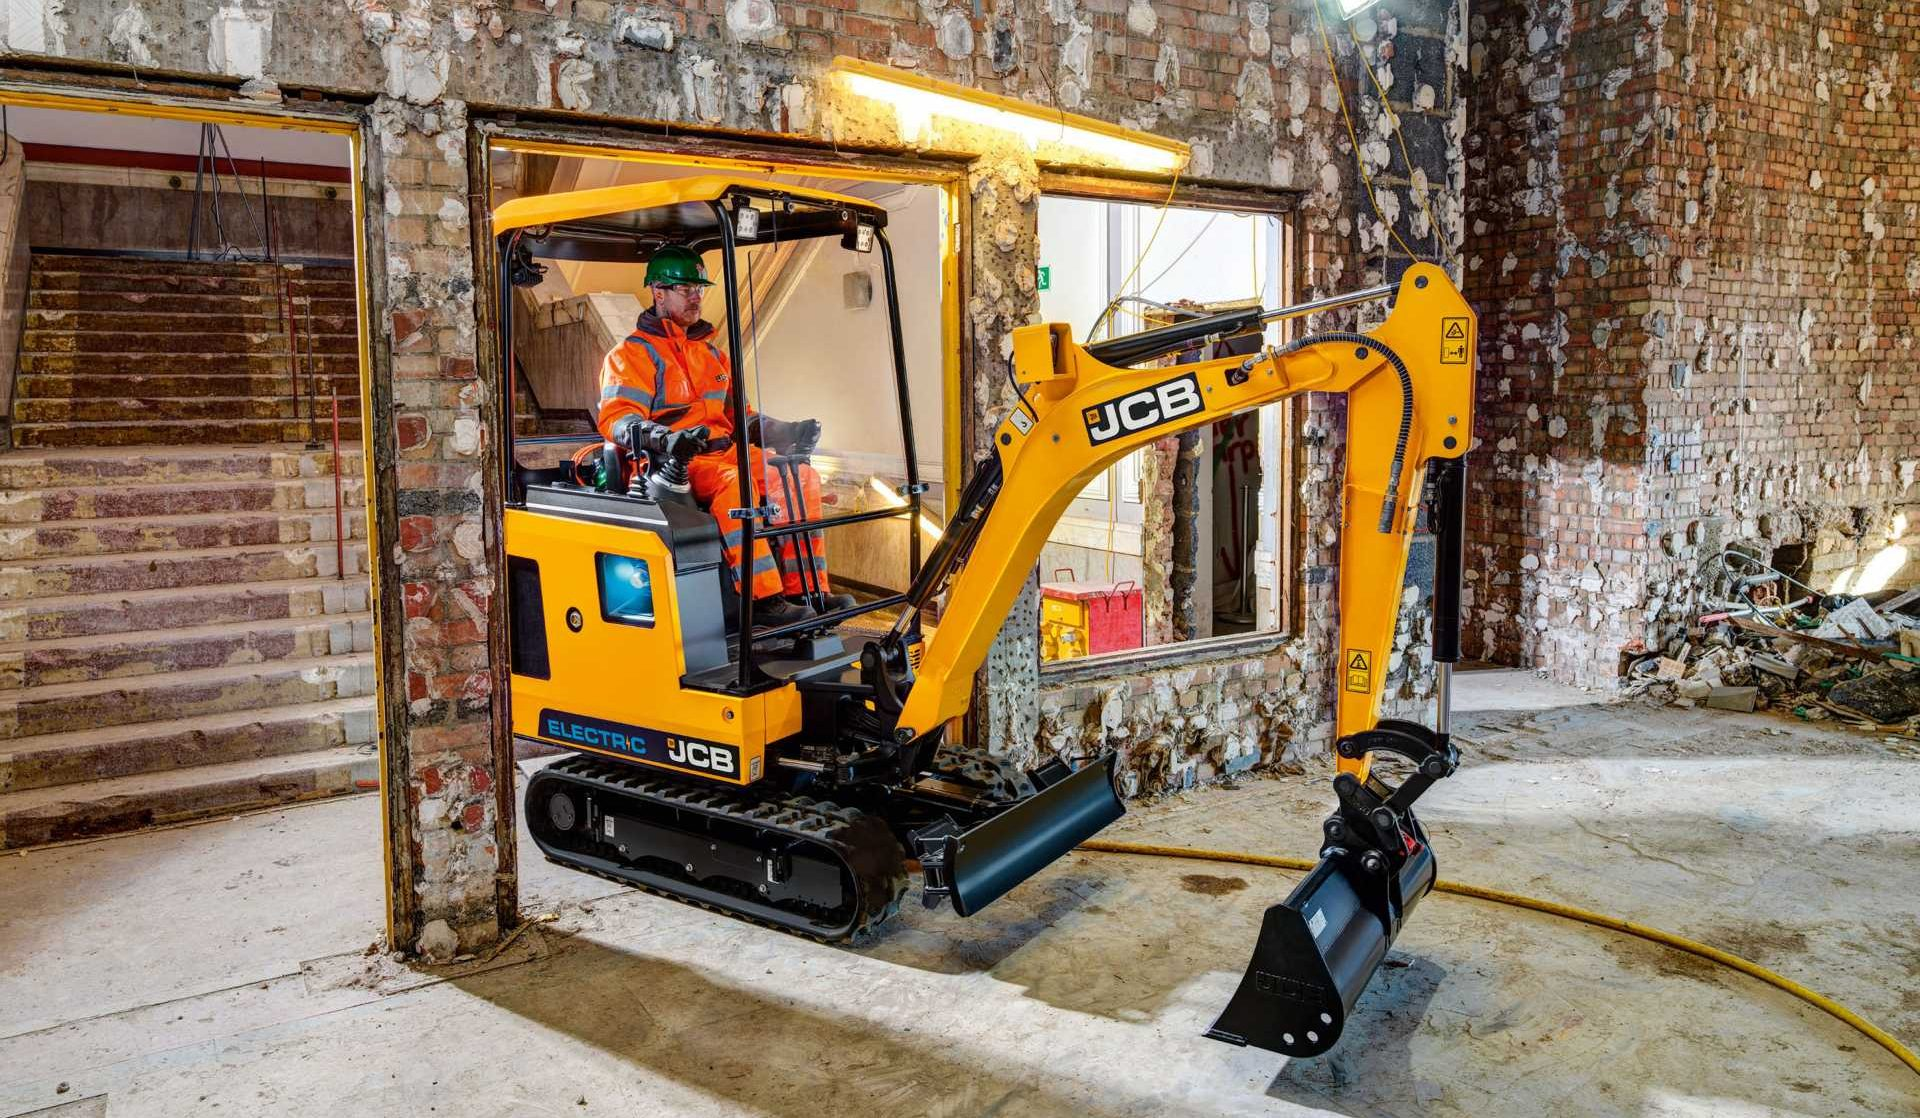 JCB (Staffordshire) for developing and manufacturing the world's first volume produced fully electric digger (19C-1E),